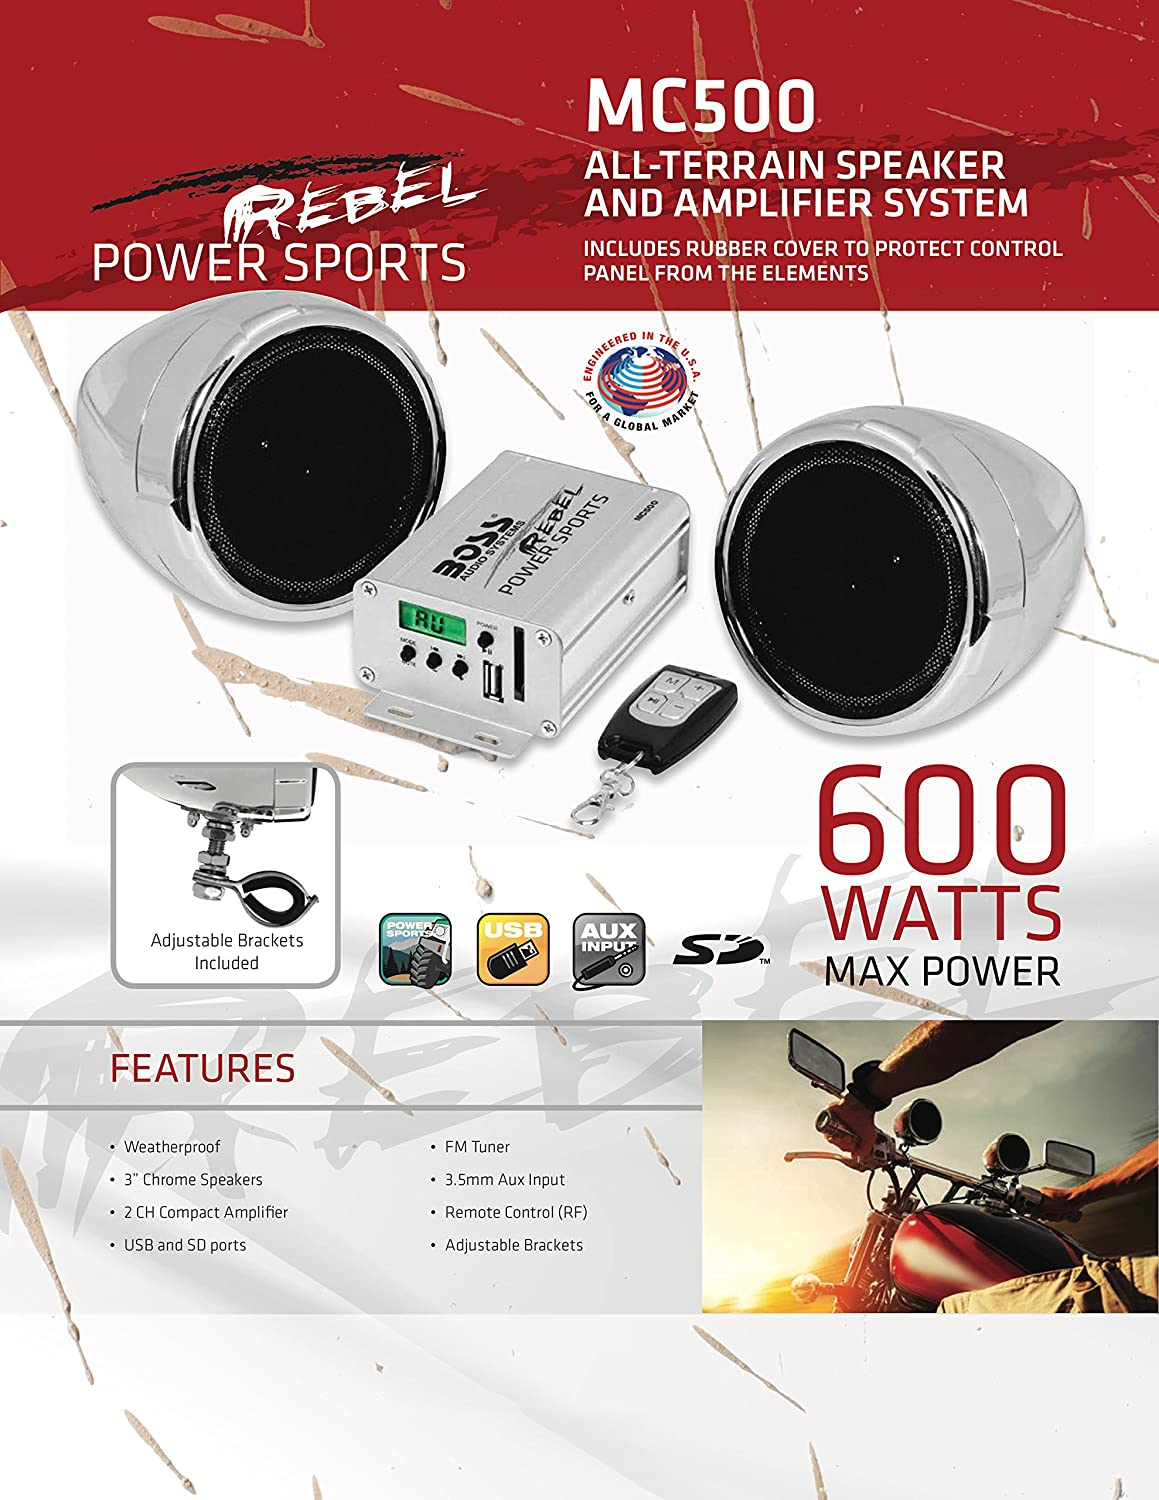 Boss Audio Mc500 All Terrain Weatherproof Speaker And Amplifier Sound System Two 3 Inch Speakers Compact Multi Function Remote Control Profile Car Wiring Diagrams